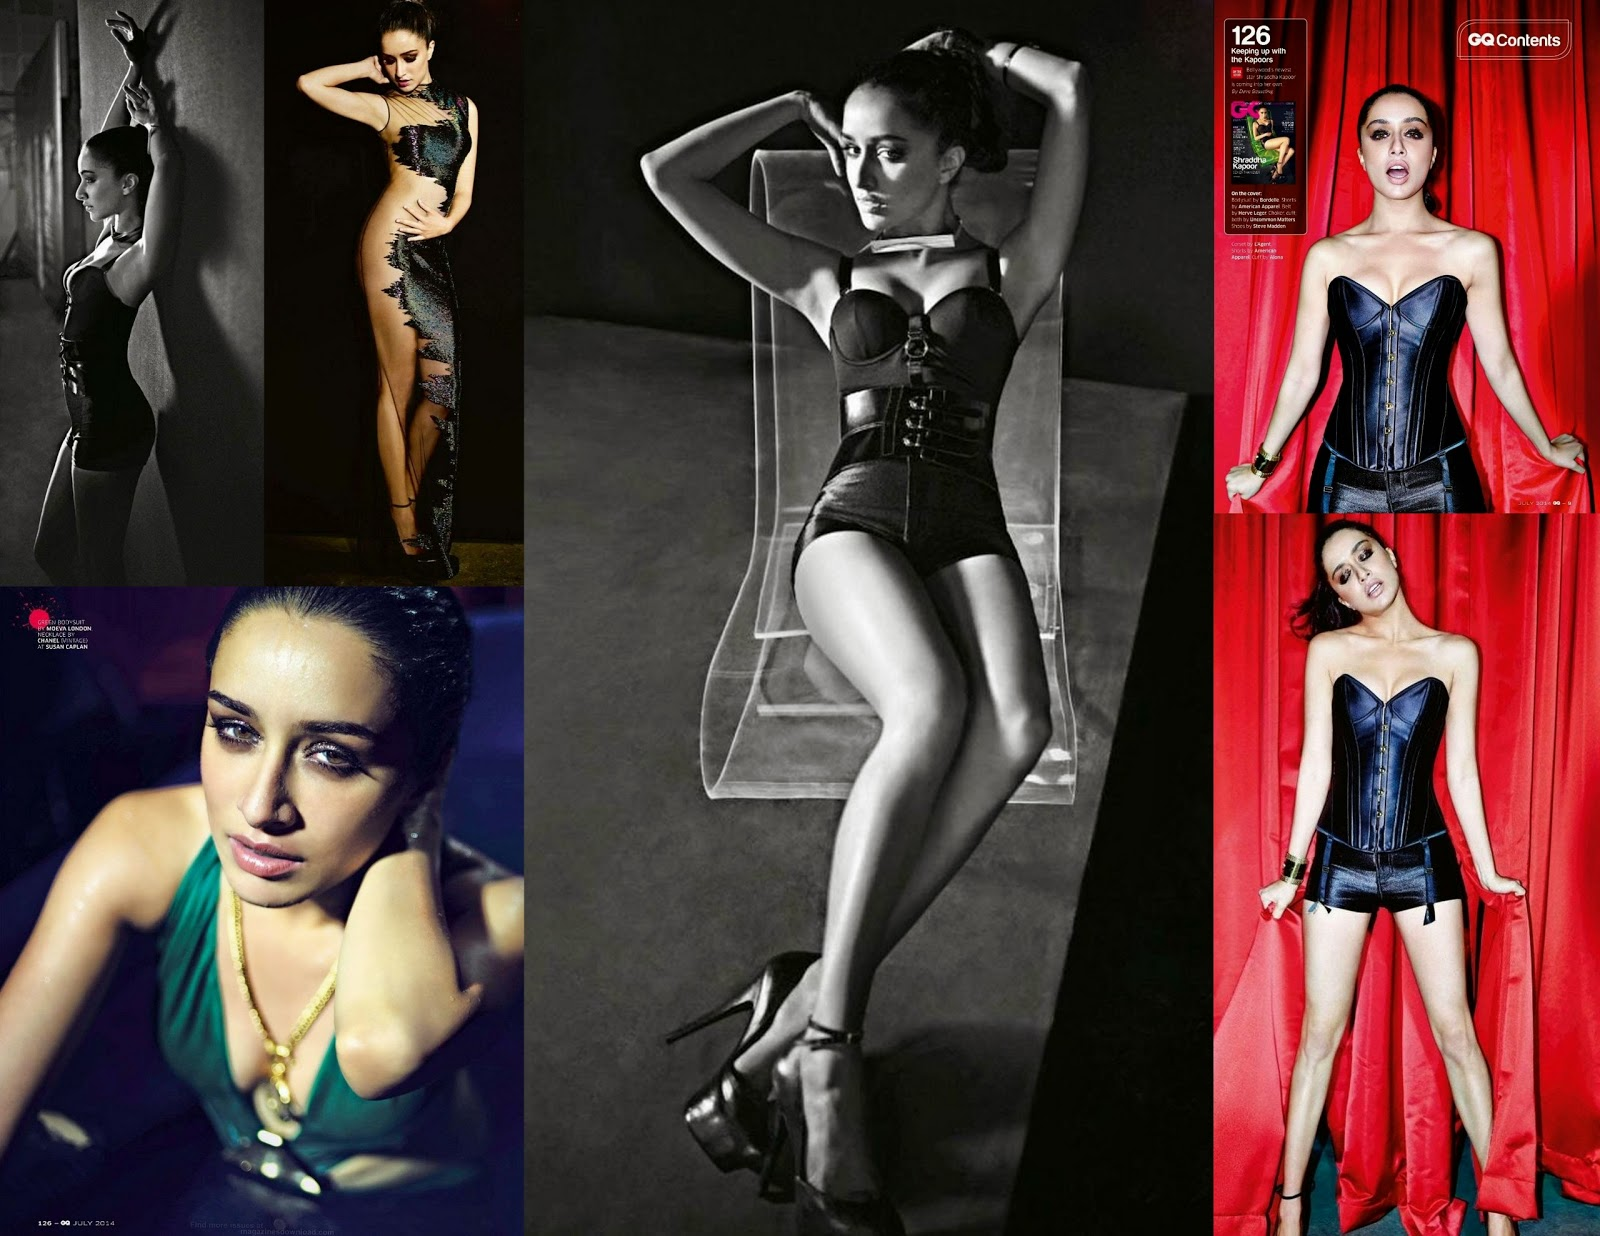 Shradha Kapoor Photoshoot for GQ Magazine